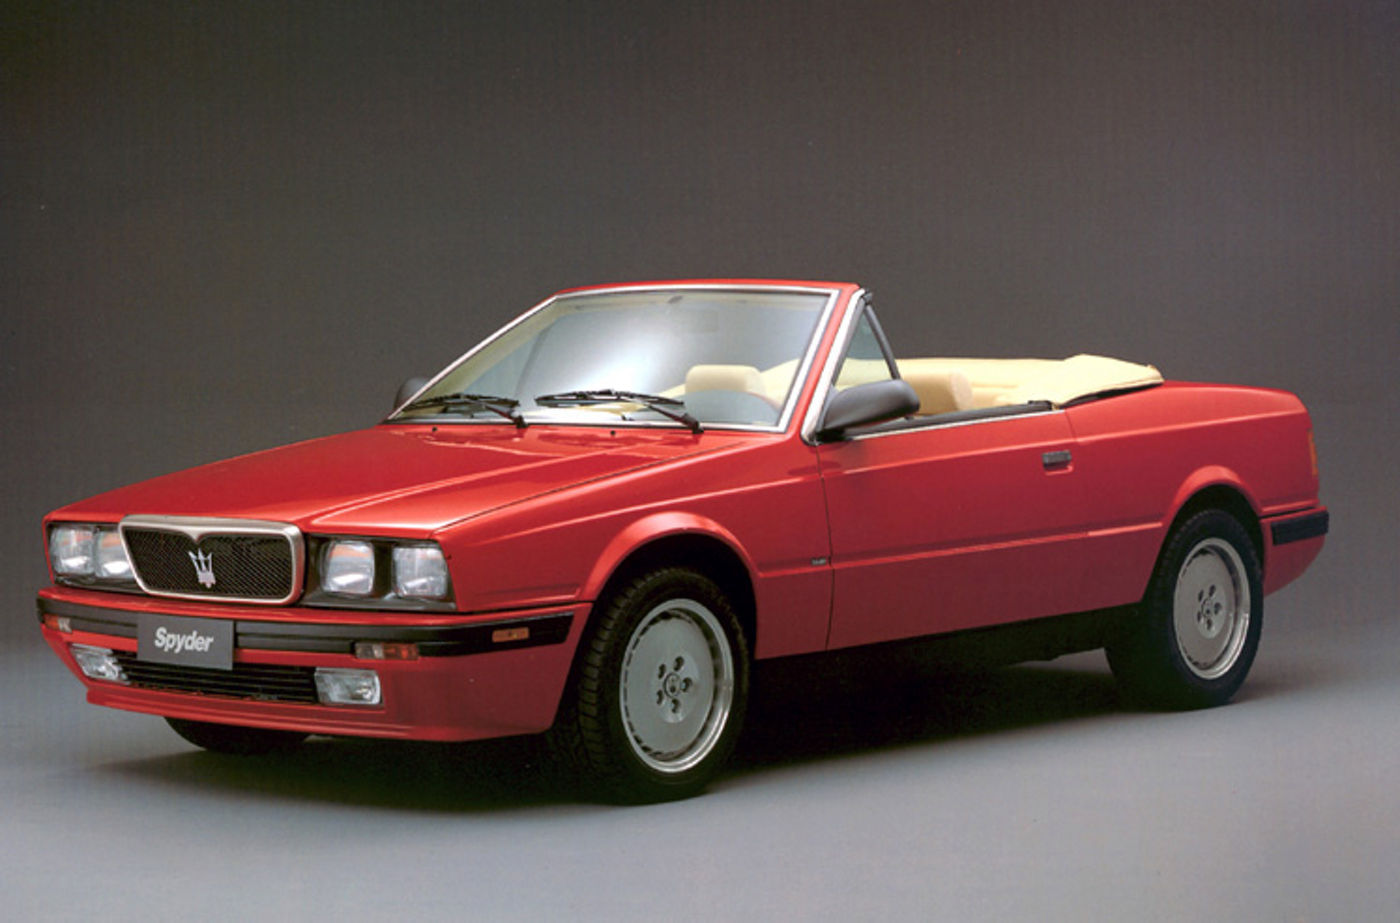 1990 Maserati Biturbo Spyder convertible - the classic car model in red